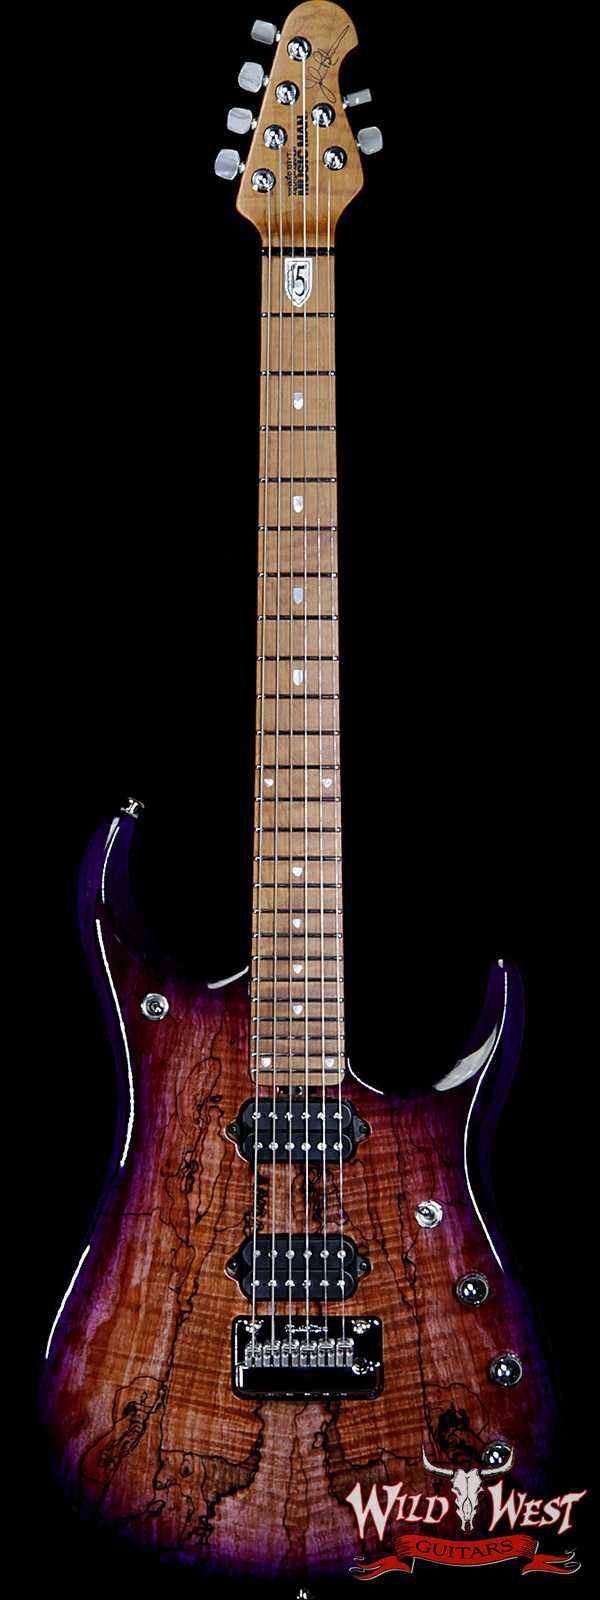 Ernie Ball Music Man BFR JP15 Piezo #28 of 84 Spalted Maple Top Roasted Flame Maple Neck Purple Sunset